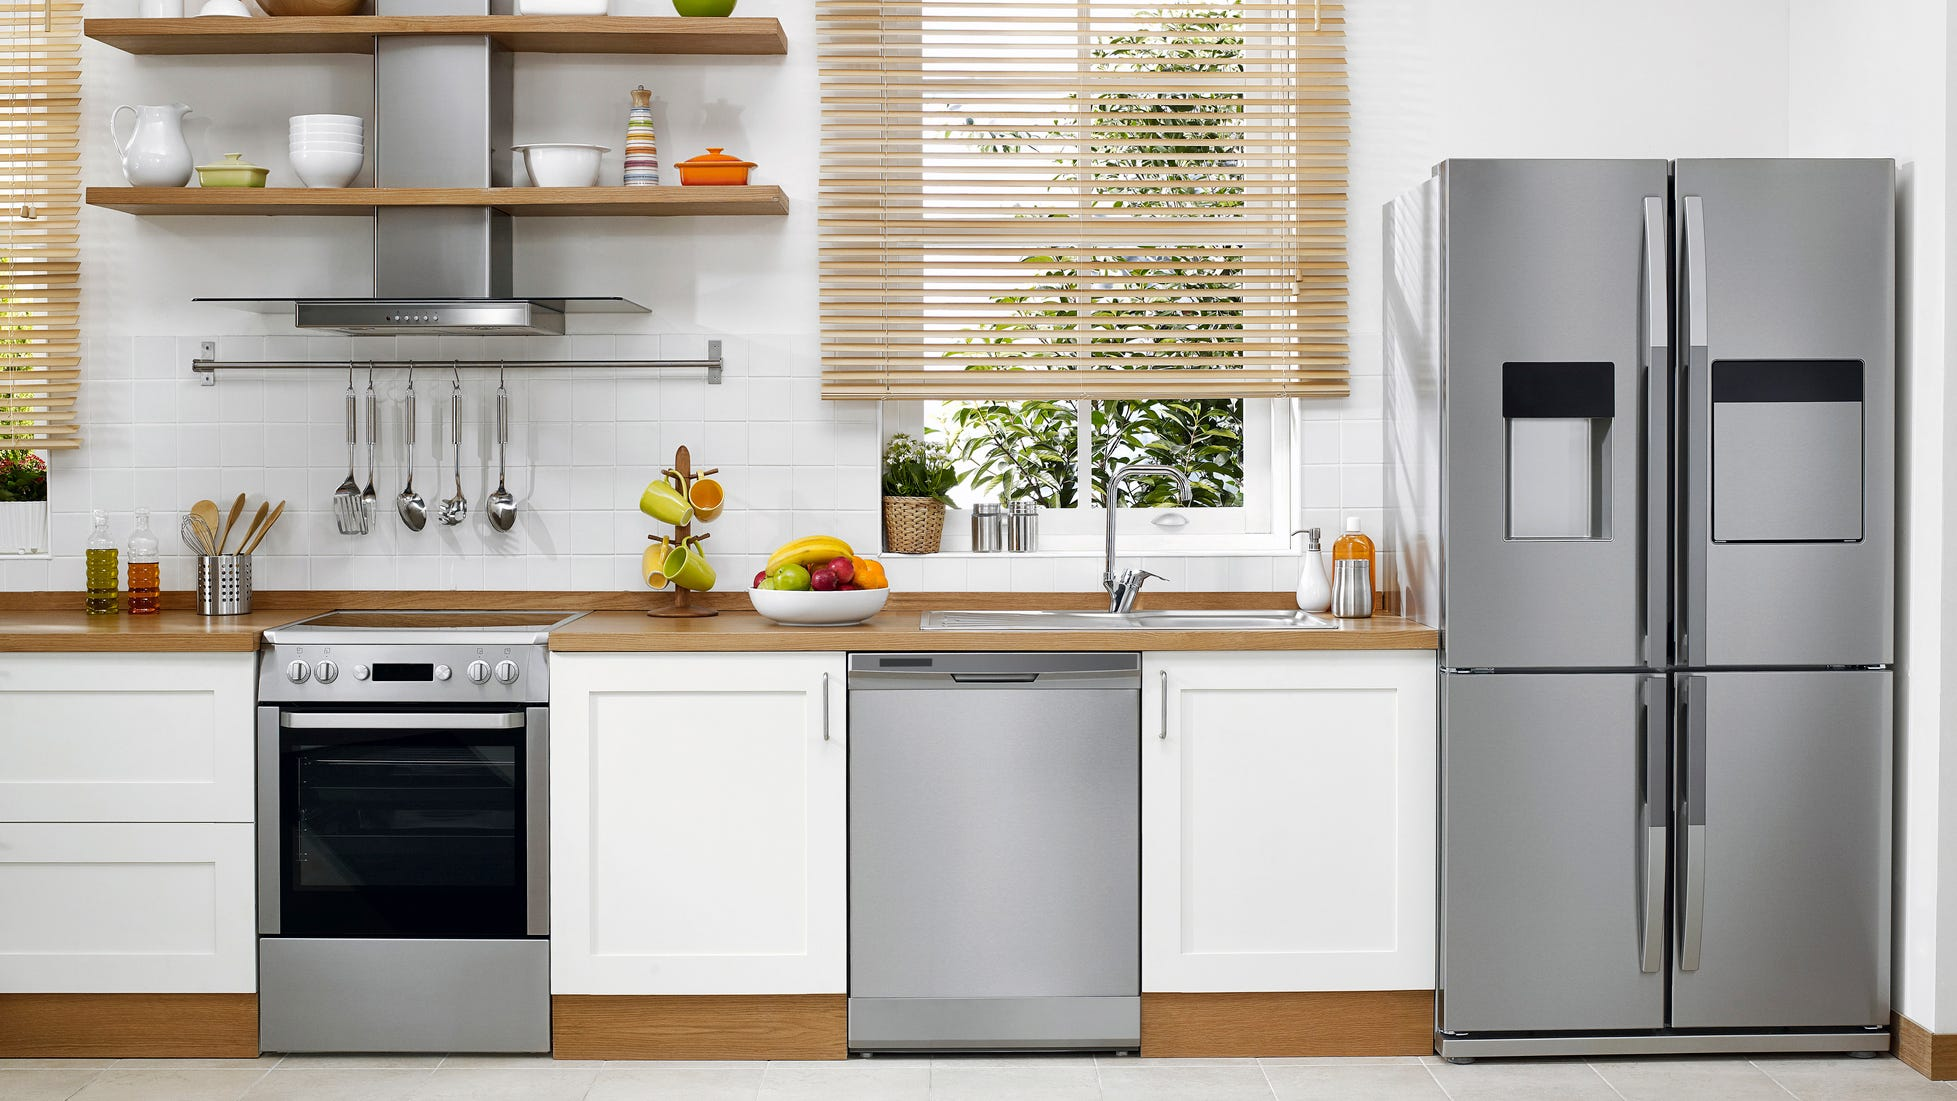 Buying A New Appliance 7 Things You Need To Know Ahead Of Time